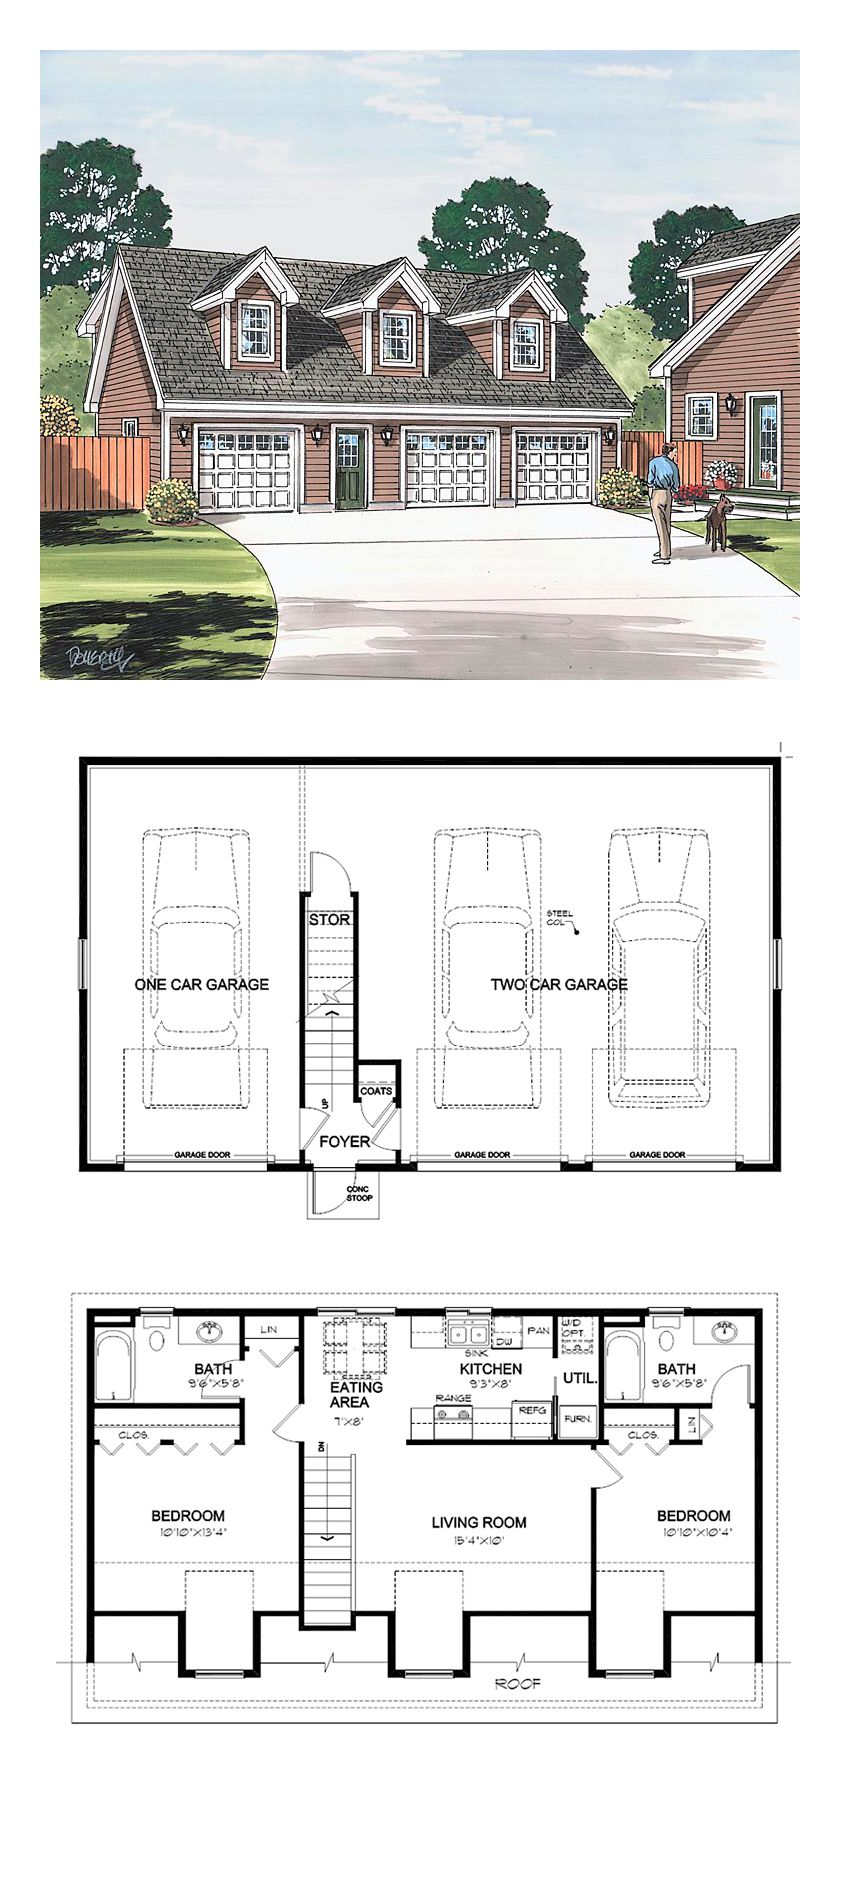 Garage apartment plan 30032 total living area 887 sq for Garage apartment plans 2 car